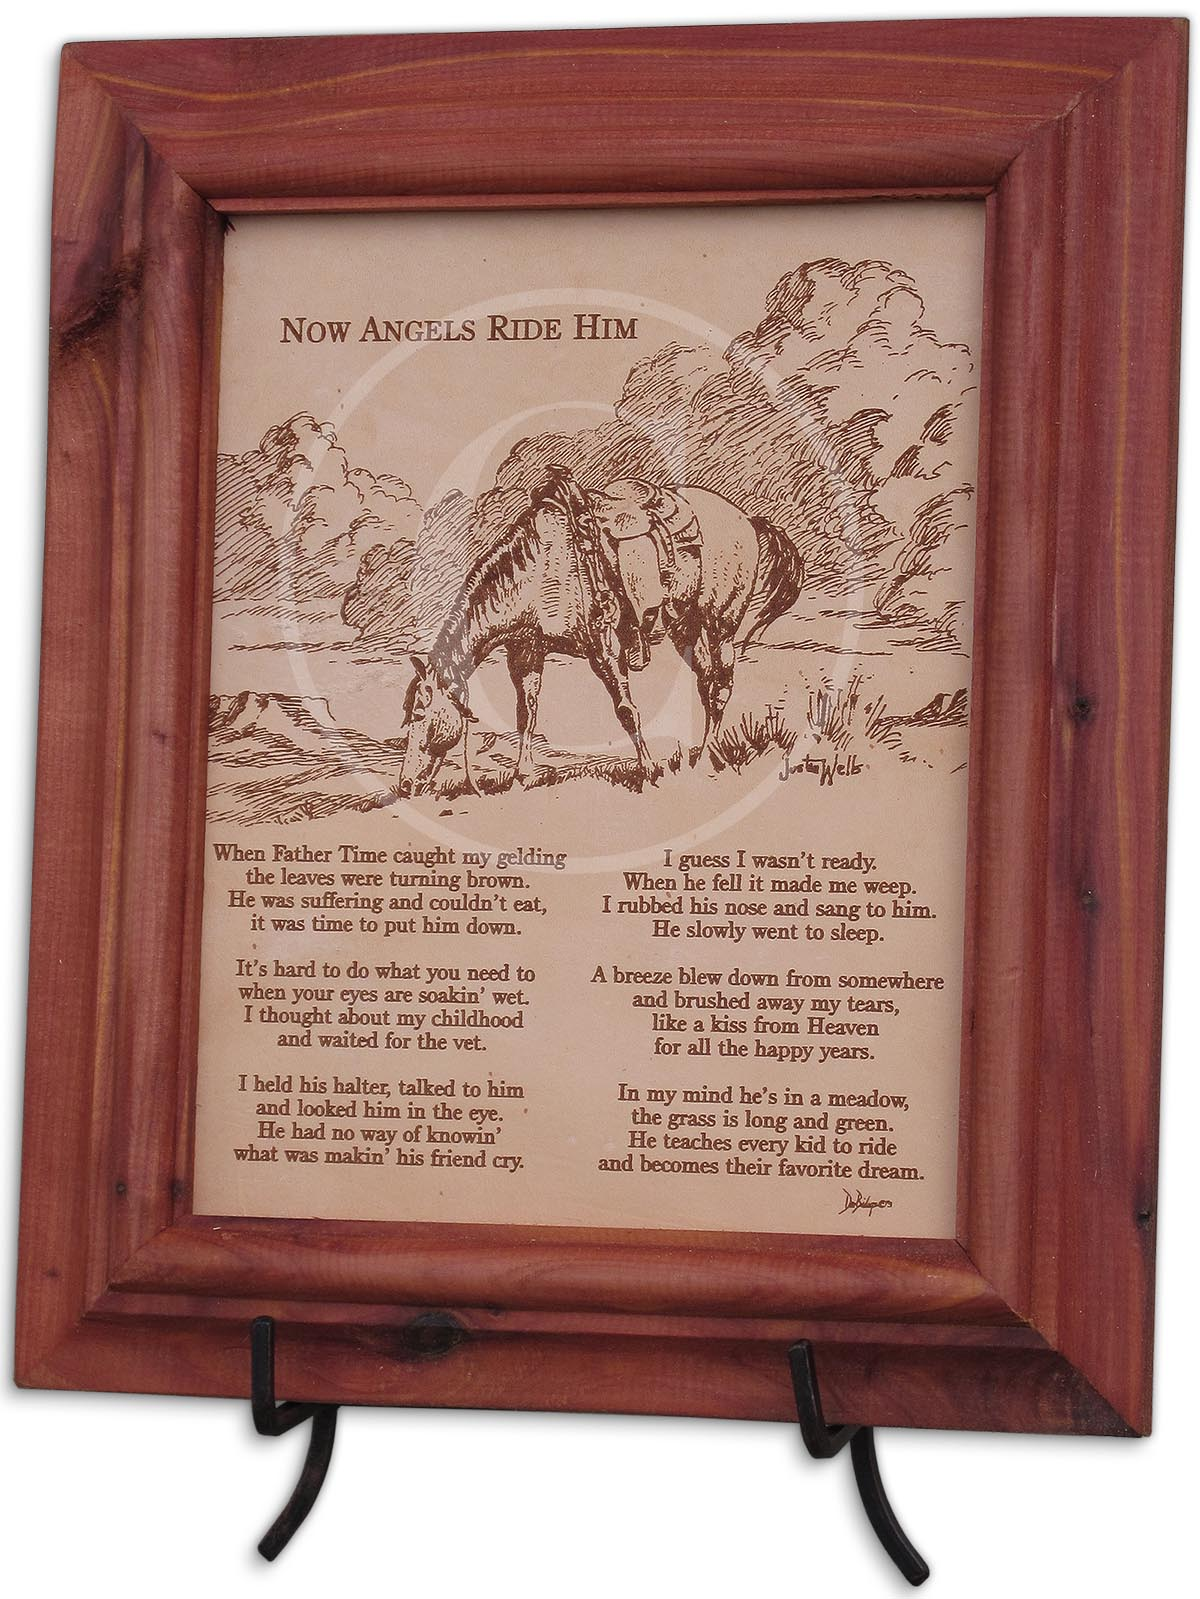 Now Angels Ride Him 8x10 Framed Verse On Leather